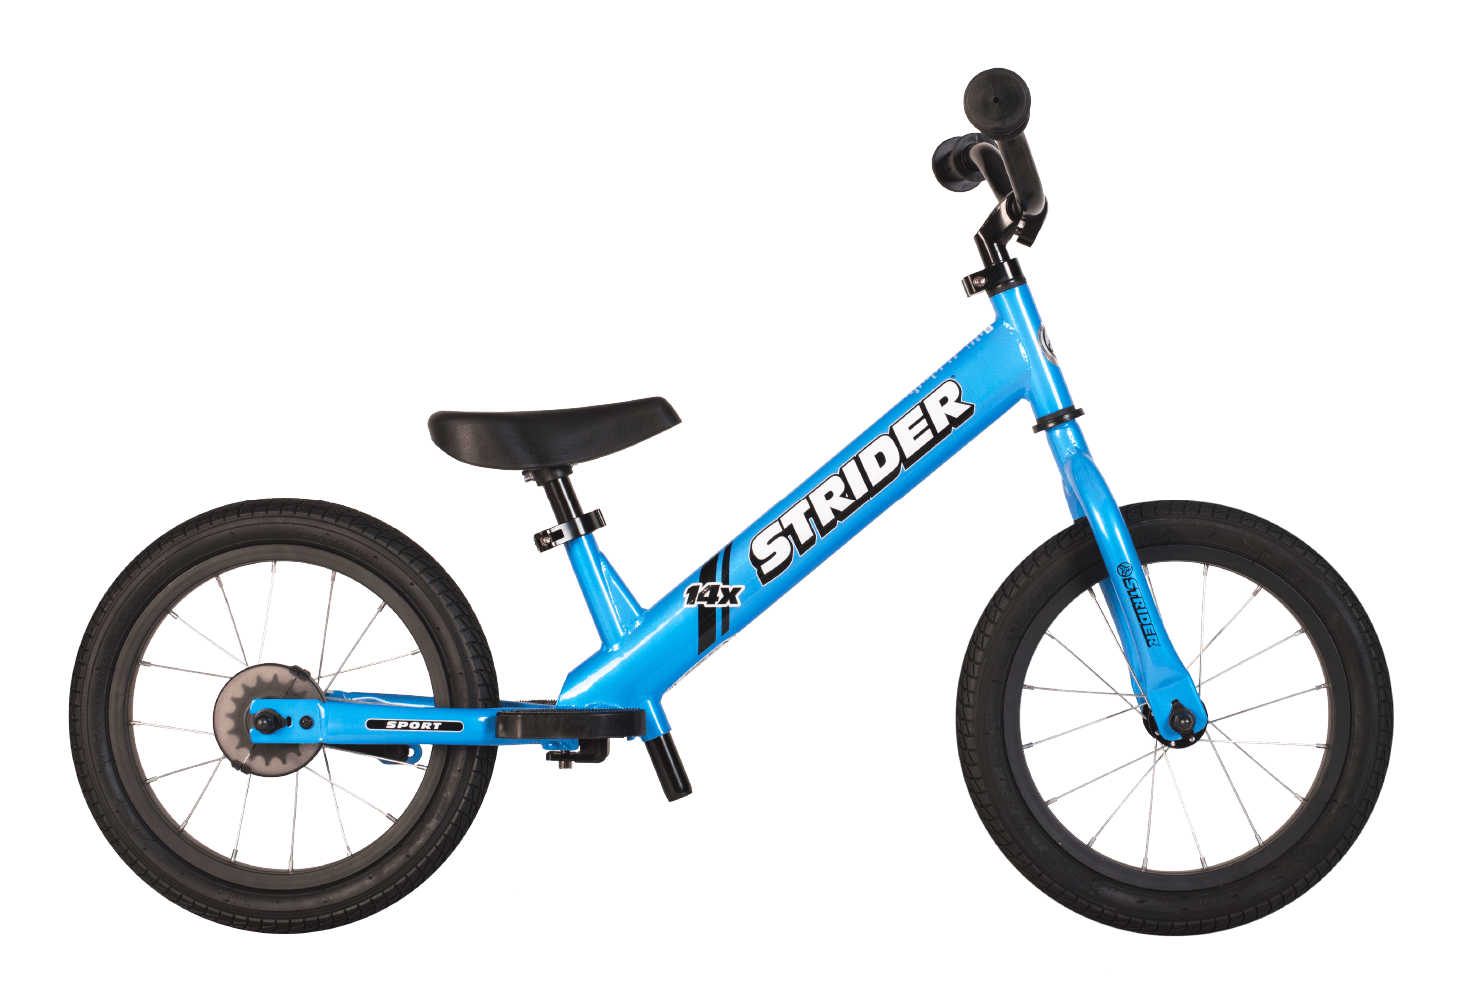 Strider 14x Balance Bike - Blue